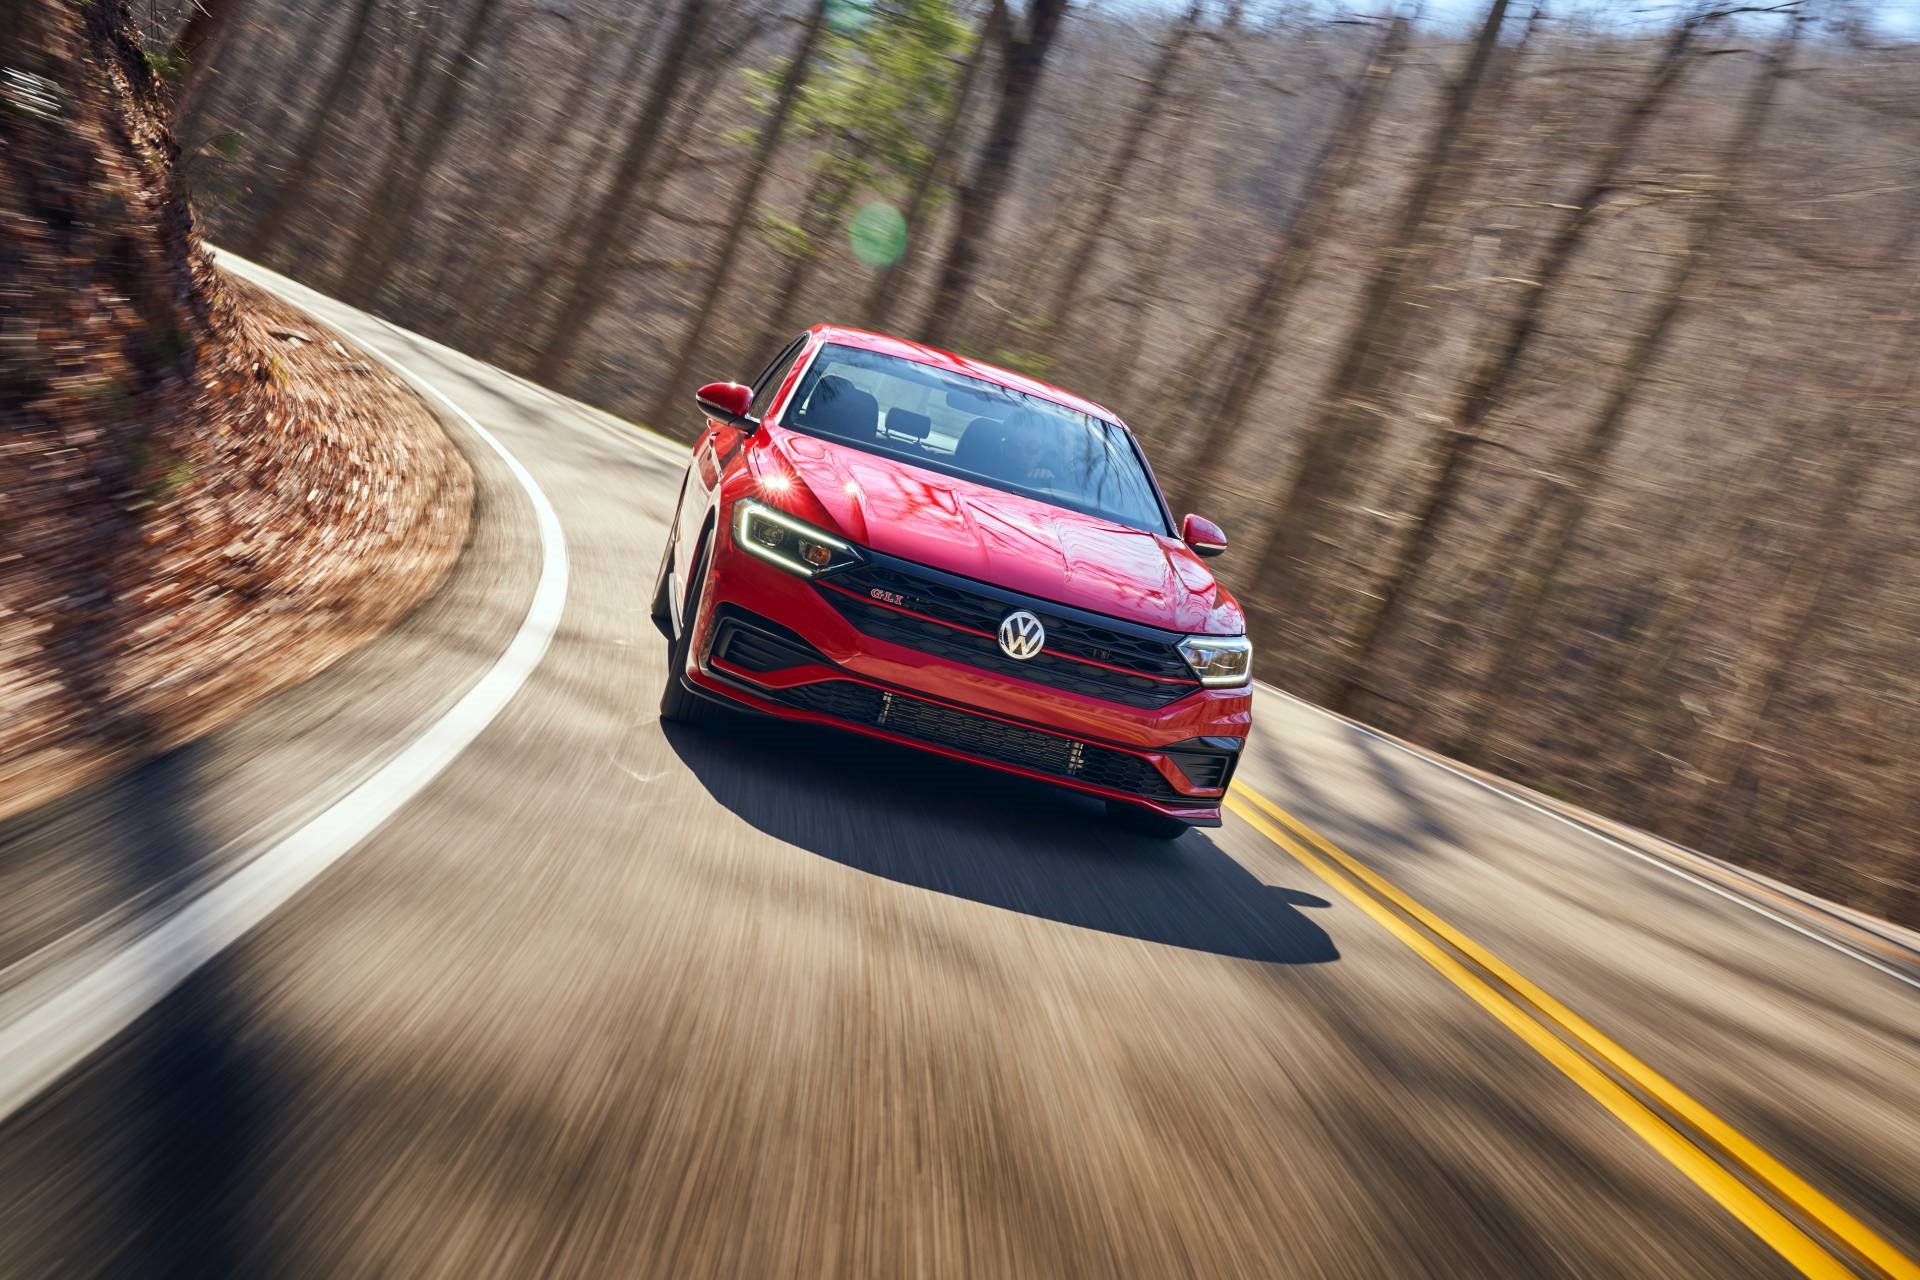 New 2019 Volkswagen-Jetta 1.4T SE Jetta 1.4T SE for sale $22,395 at M and V Leasing in Brooklyn NY 11223 1